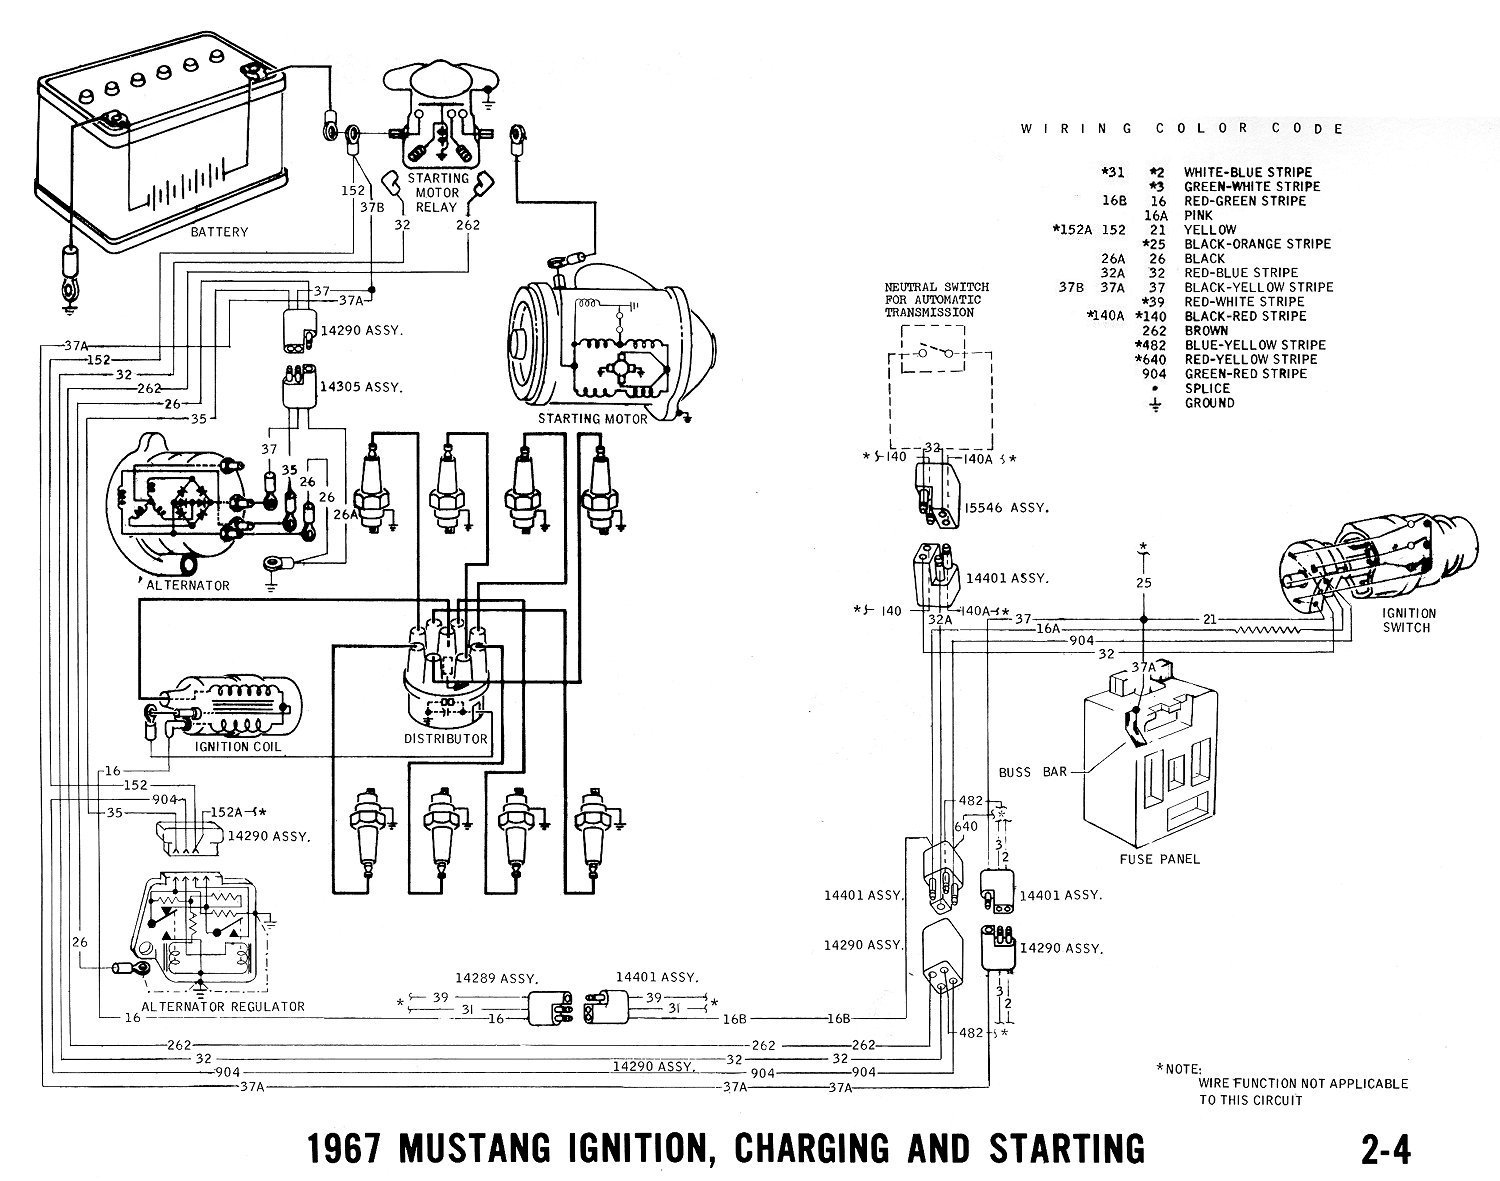 349660 Radio Noise Suppressing Capacitor on 2004 Mustang Gt Fuse Box Diagram